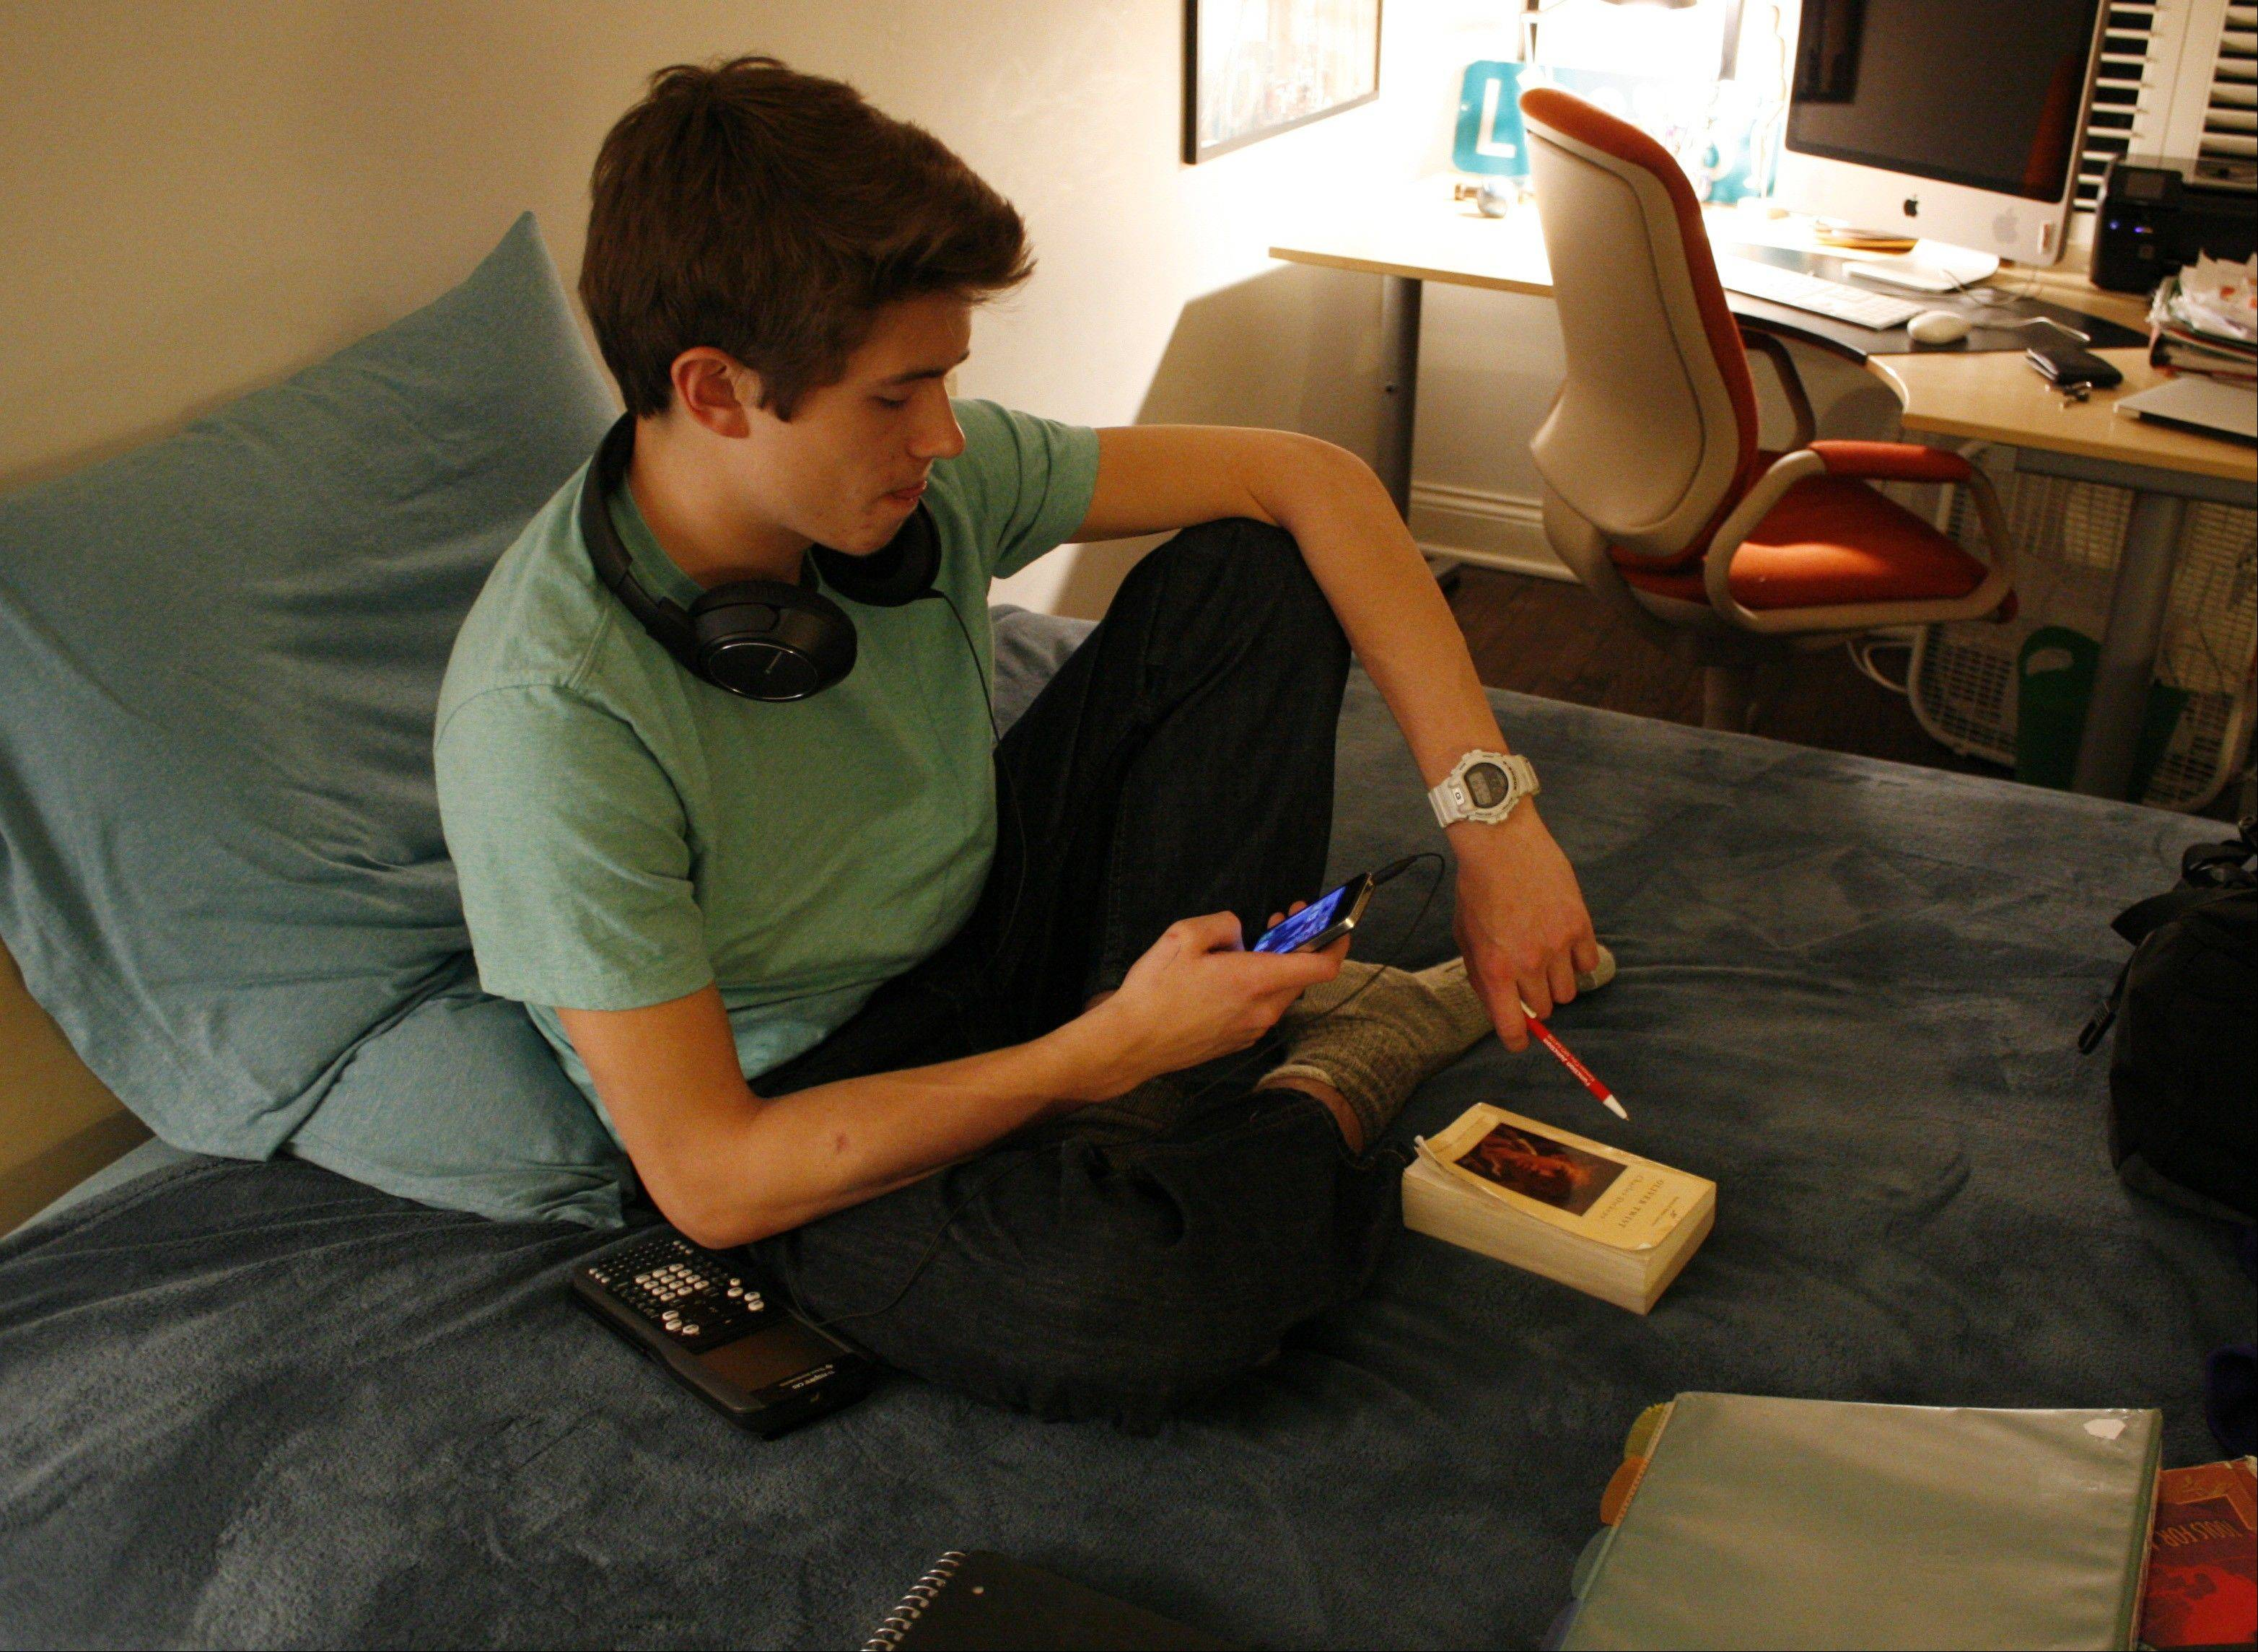 Donald Conkey, 15, checks his smartphone Monday while doing homework in his bedroom in Wilmette. A new report from the Pew Internet & American Life Project says more teens are using smartphones as a main means of accessing the Internet -- more so than adults.